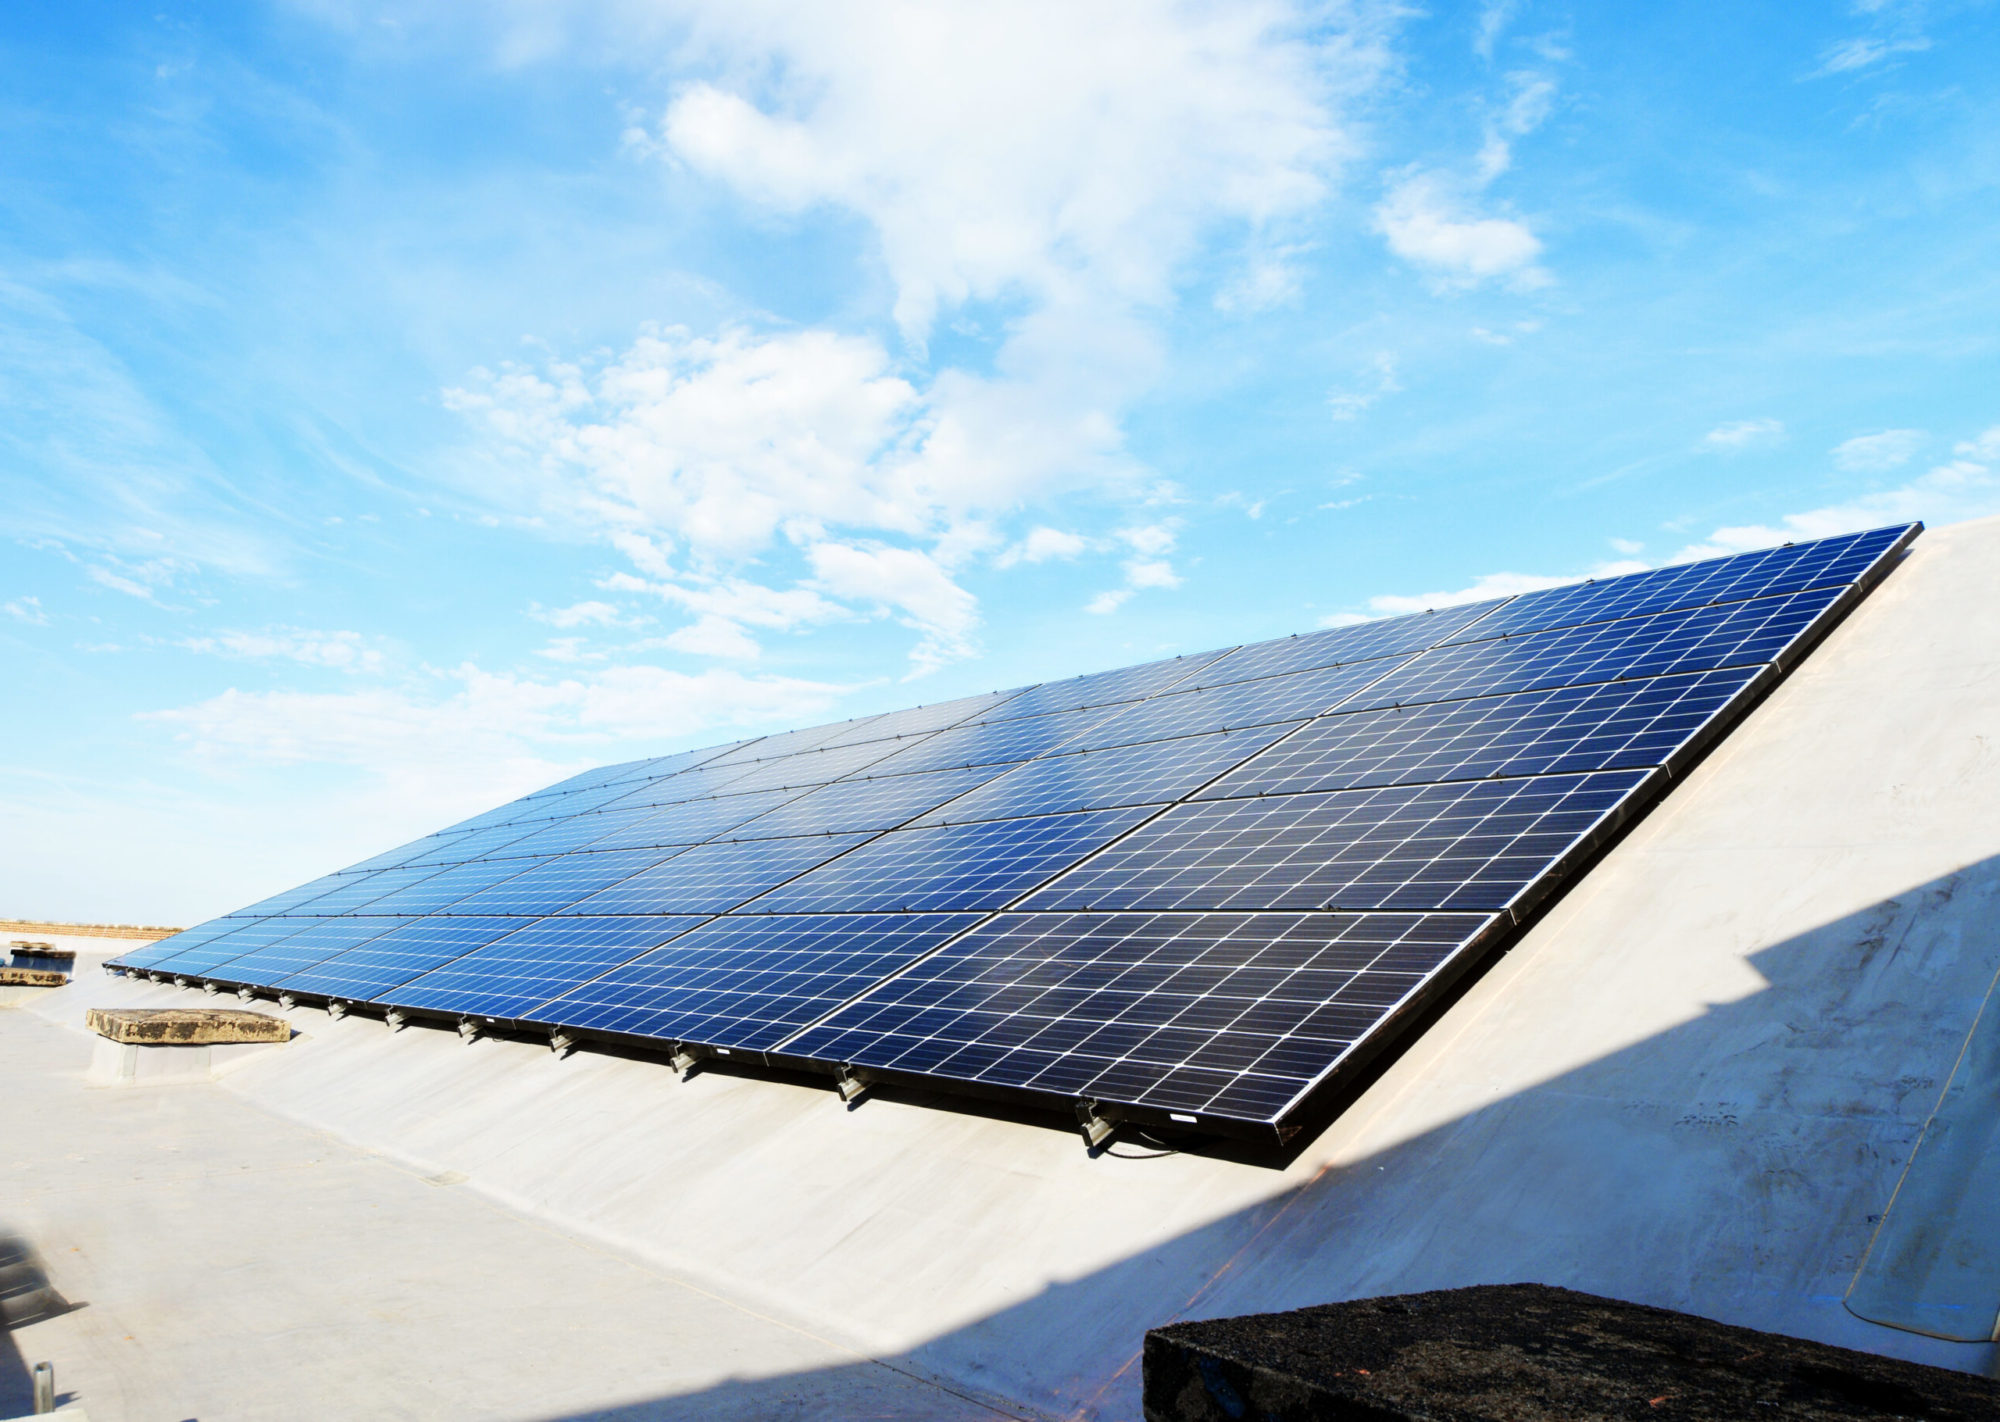 Picture of Bluestem's Rail Commercer Roof Solar Panels Project.